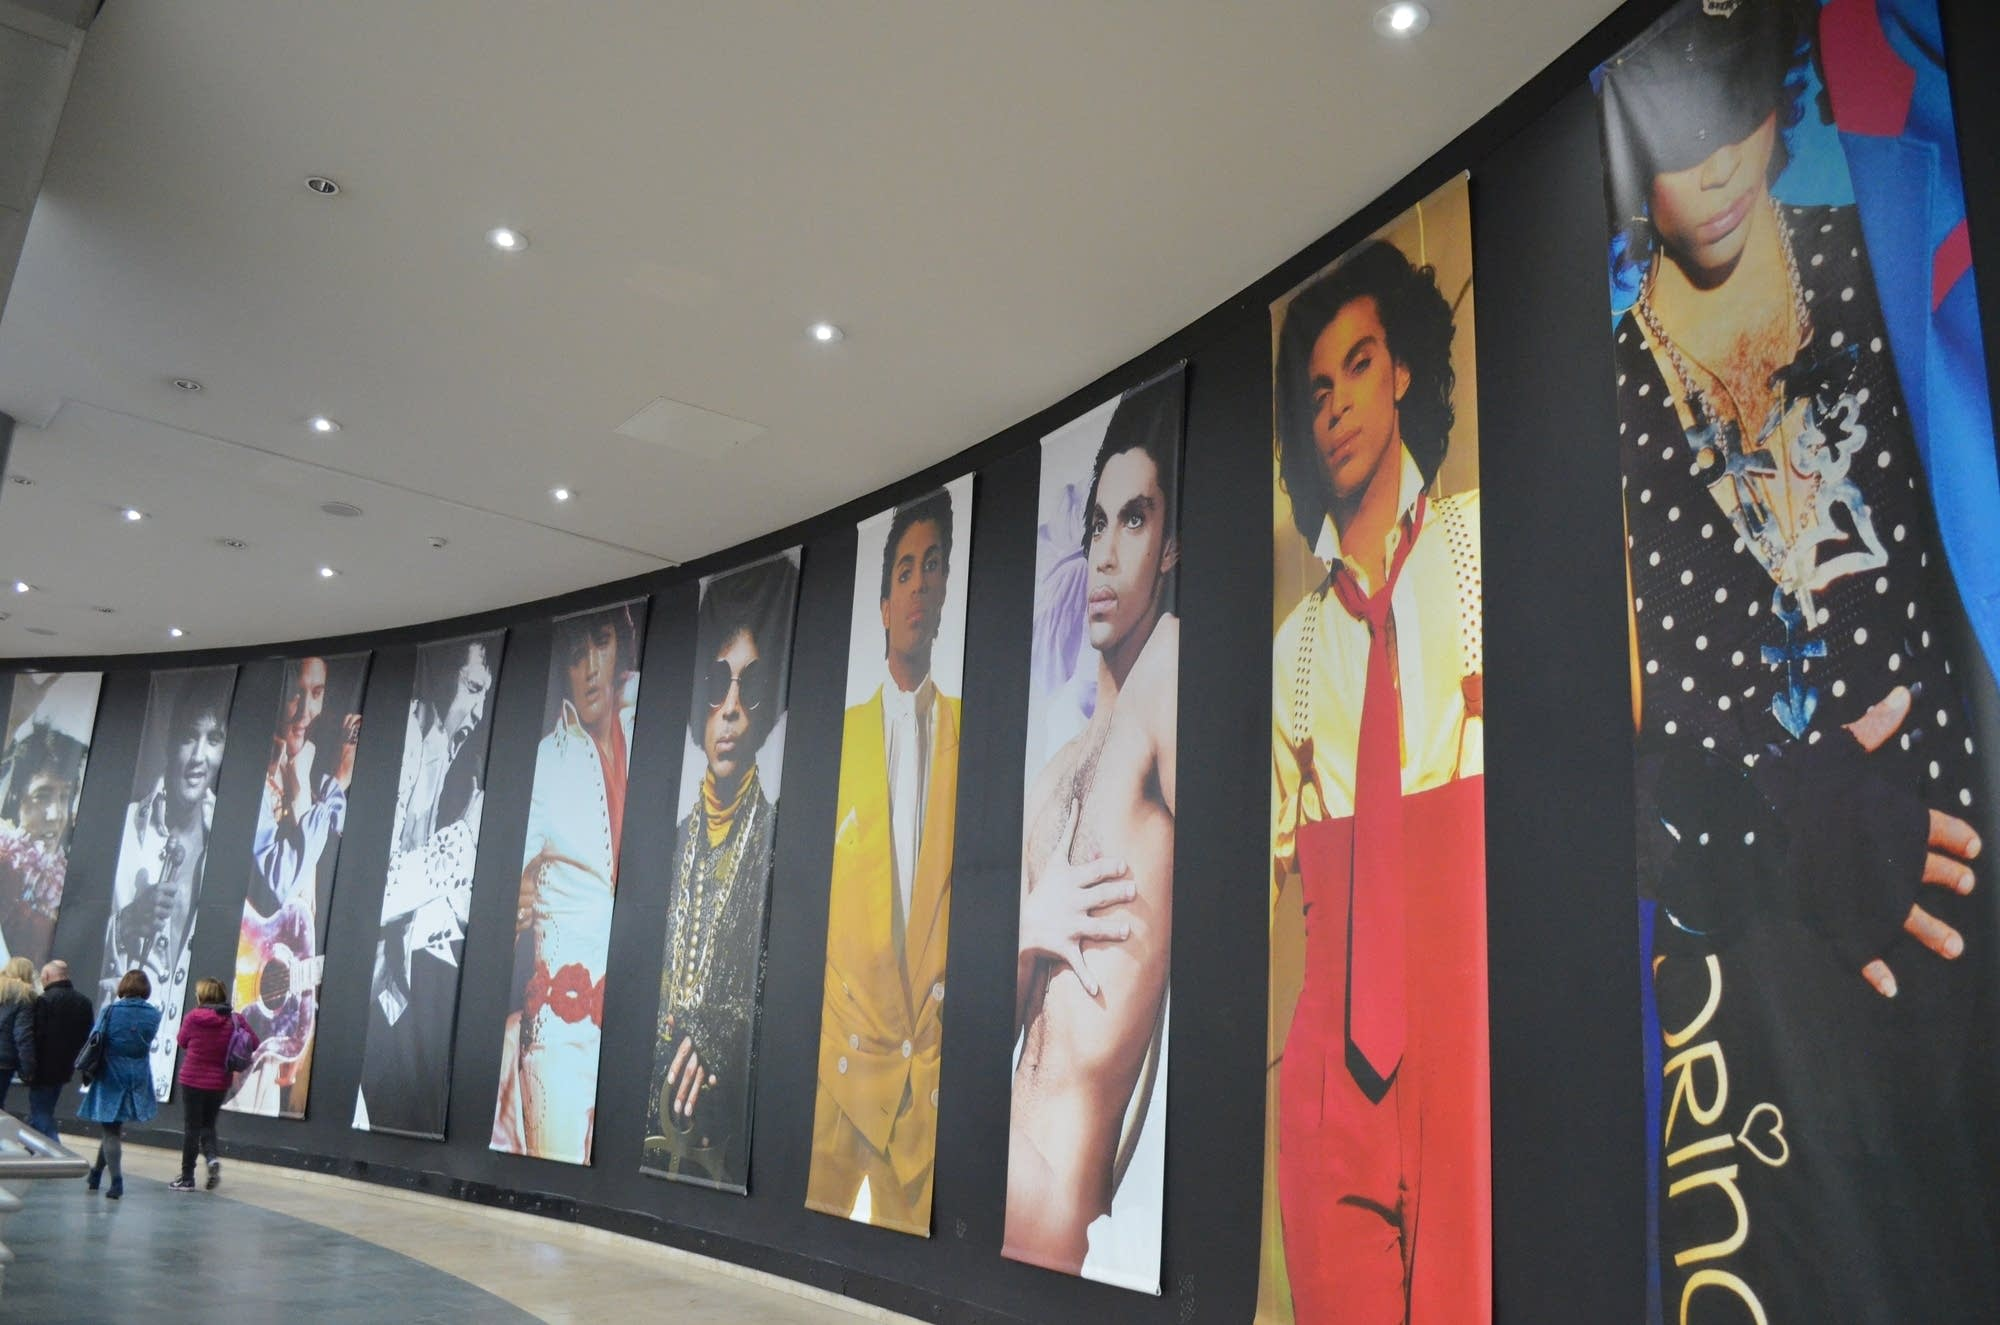 My Name Is Prince - The Official Exhibition at London's O2 Arena